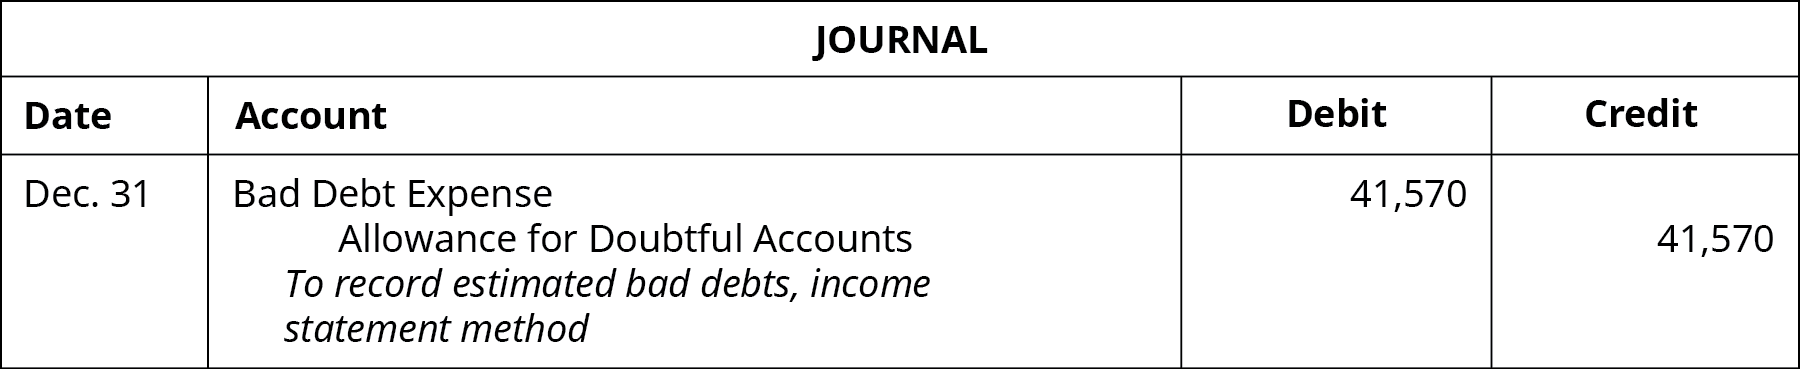 "Journal entry: December 31 Debit Bad Debt Expense 41,570, credit Allowance for Doubtful Accounts 41,570. Explanation: ""To record estimated bad debts, income statement method."""